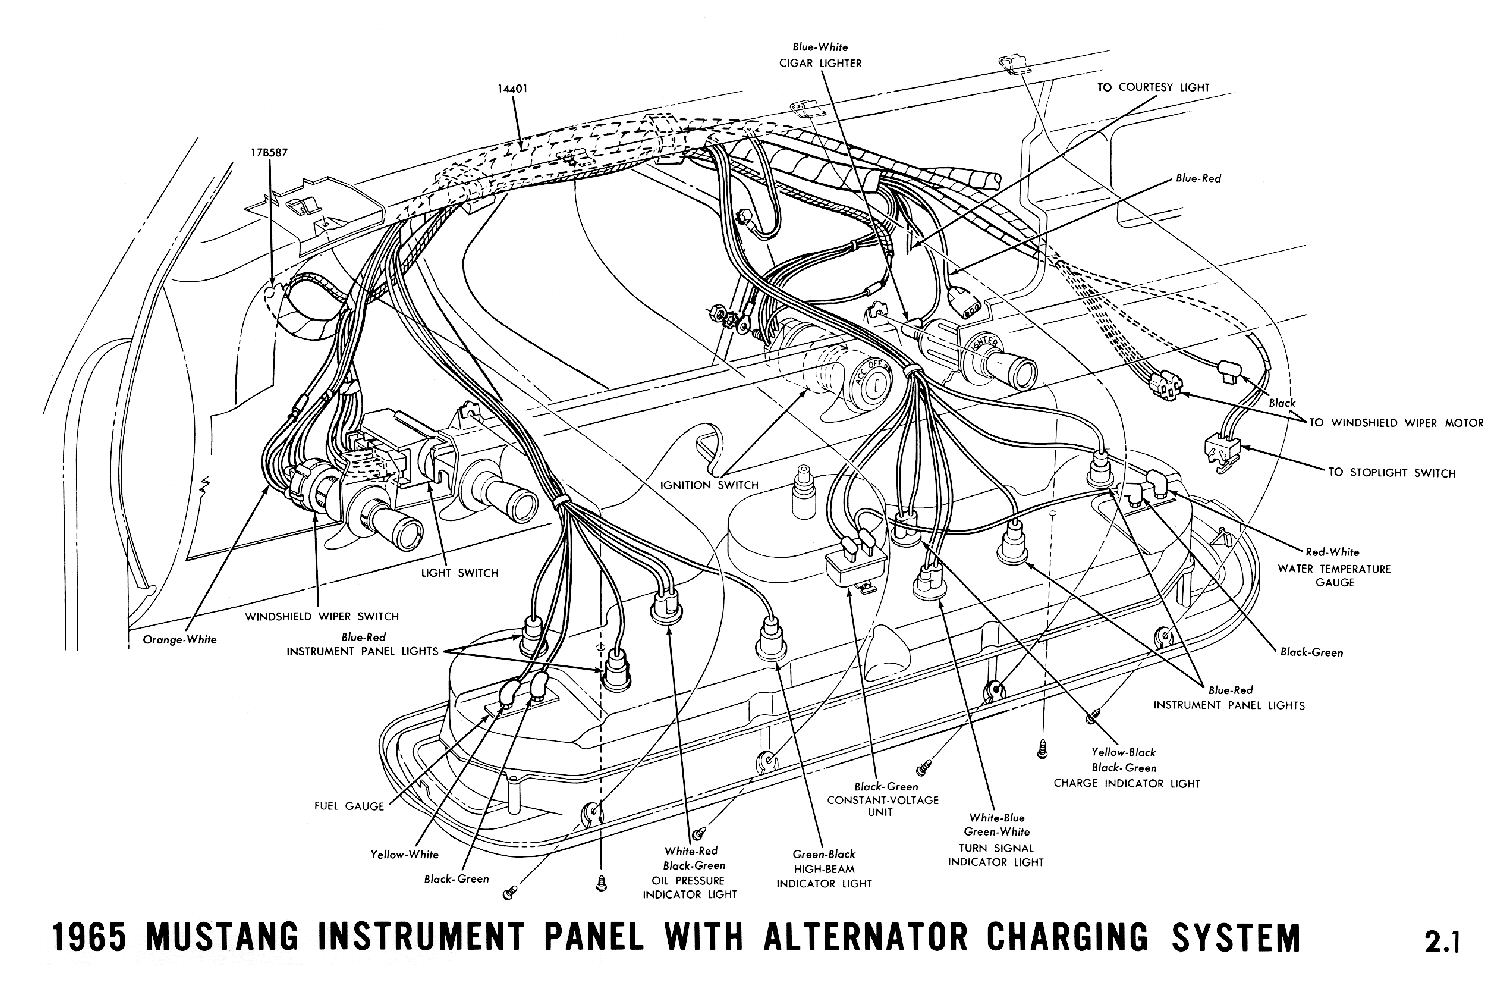 96 Mustang Gt Fuse Box Diagram Wiring Library 2000 Ford Panel 1965 Diagrams Average Joe Restoration For 46l 1996